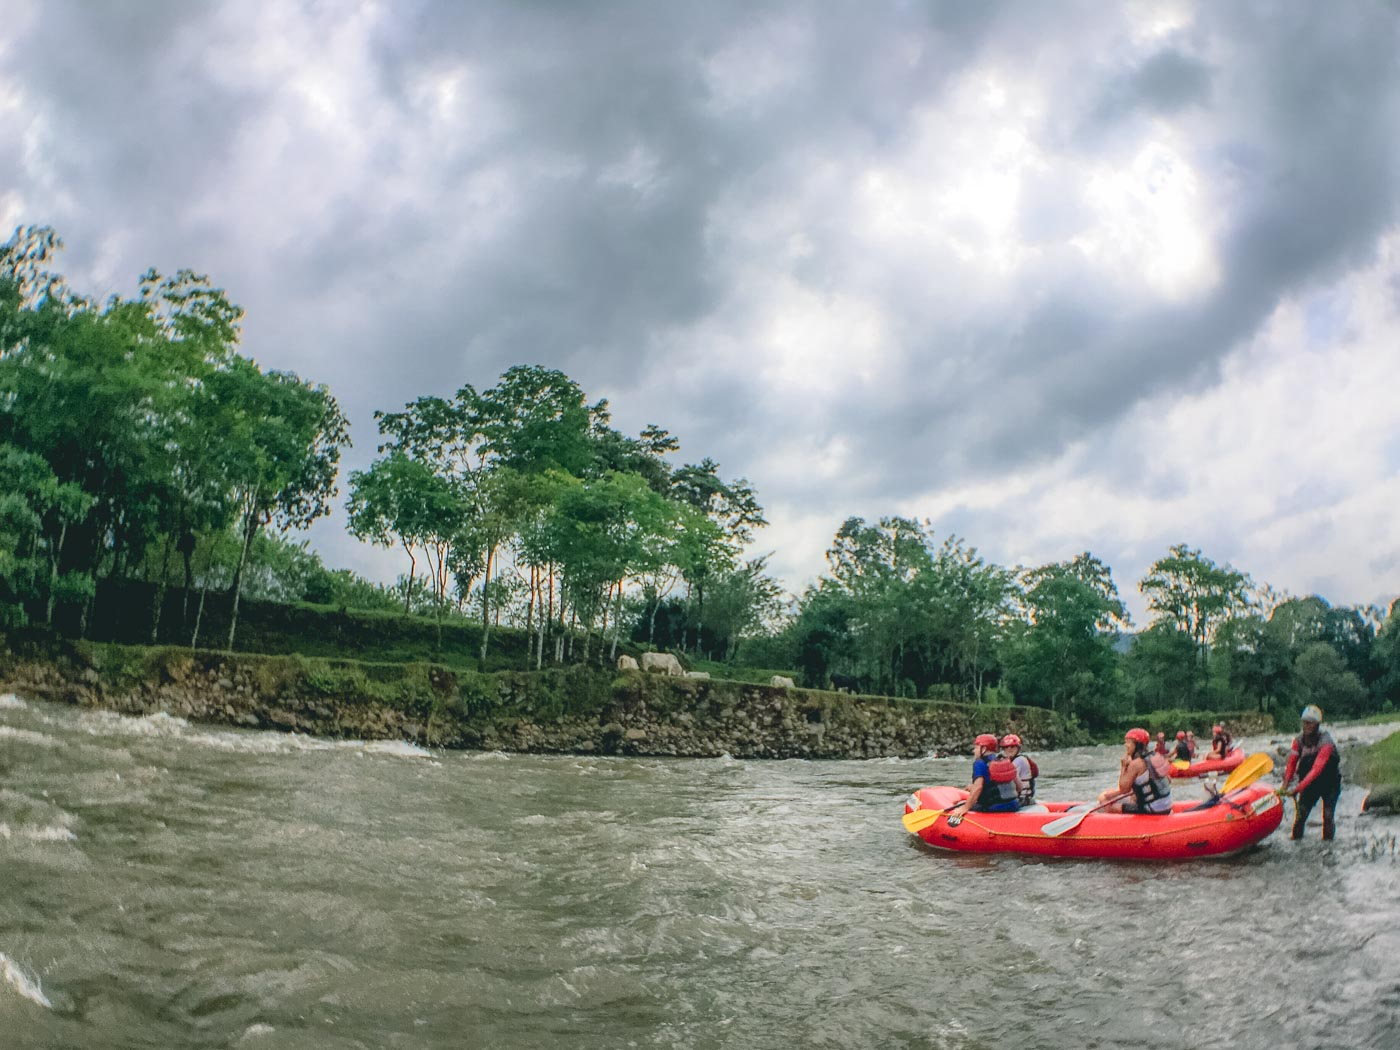 Arenal Costa Rica: River Rafting on Rio Balsa